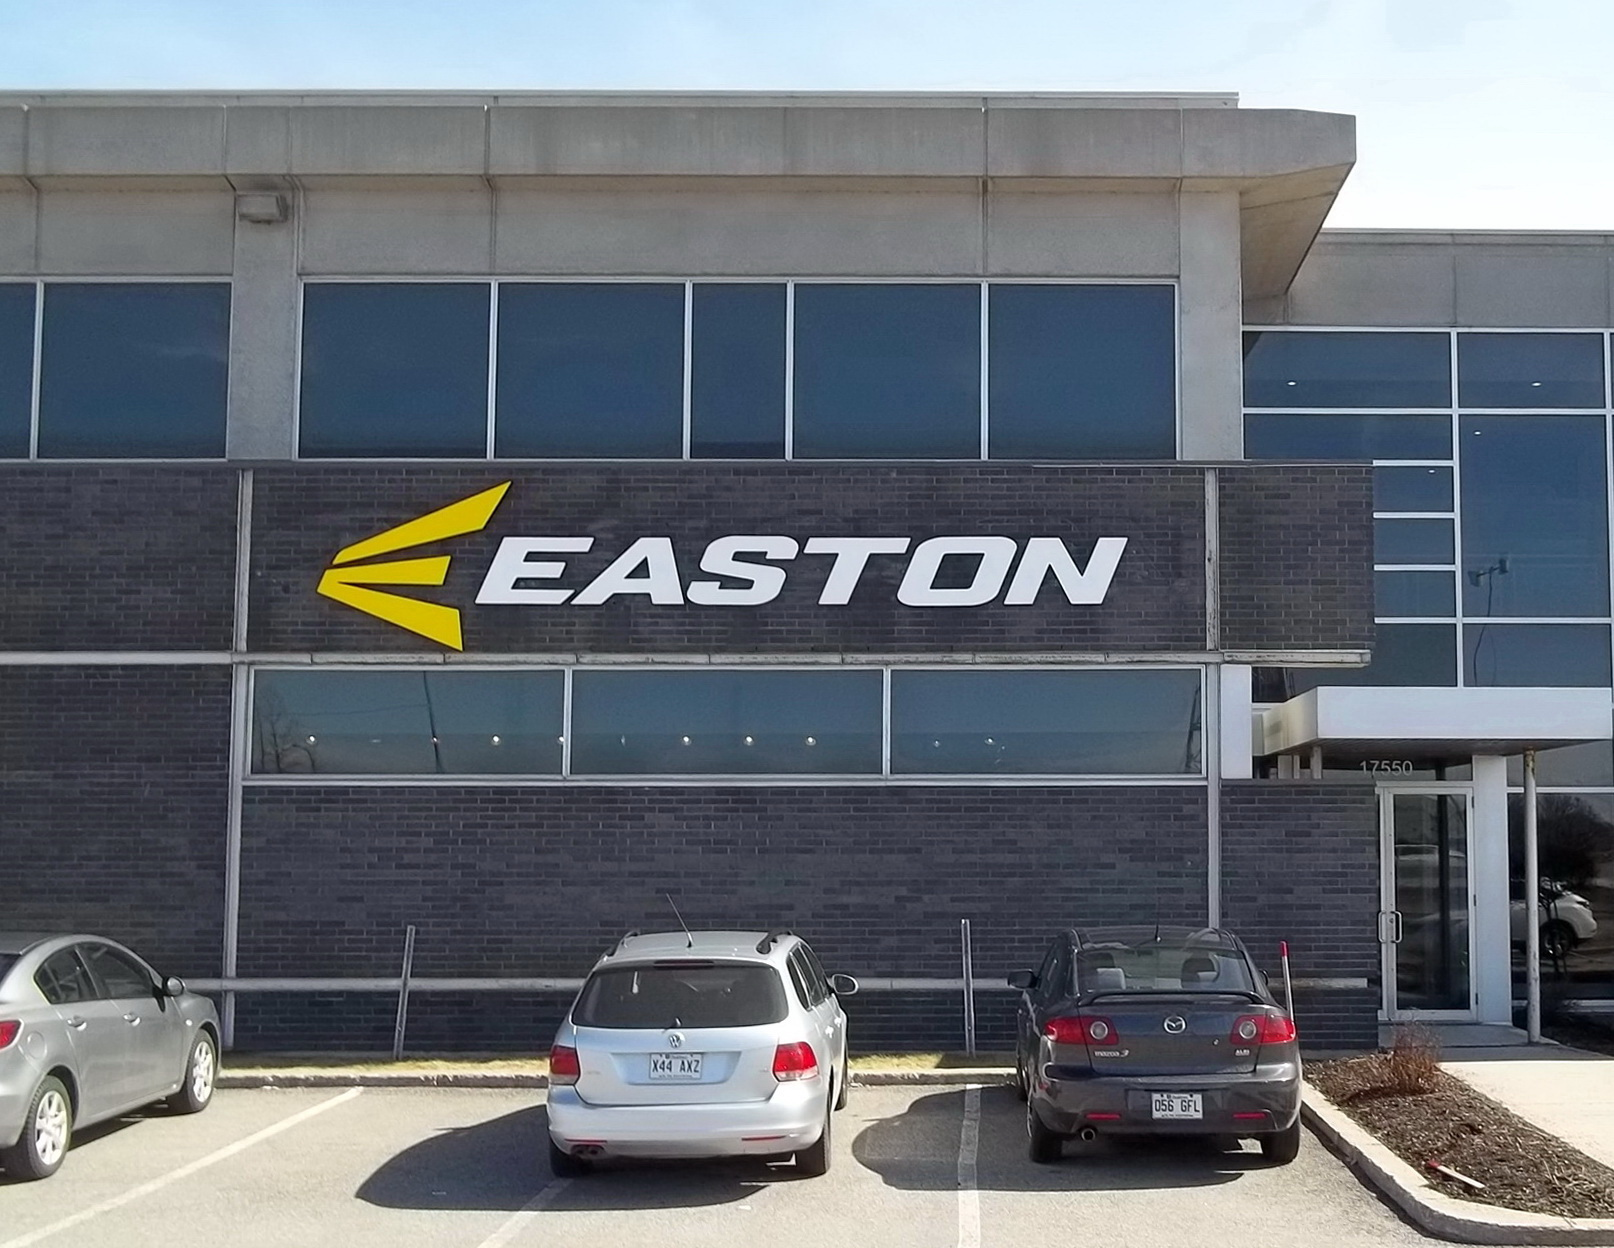 Easton sports sign